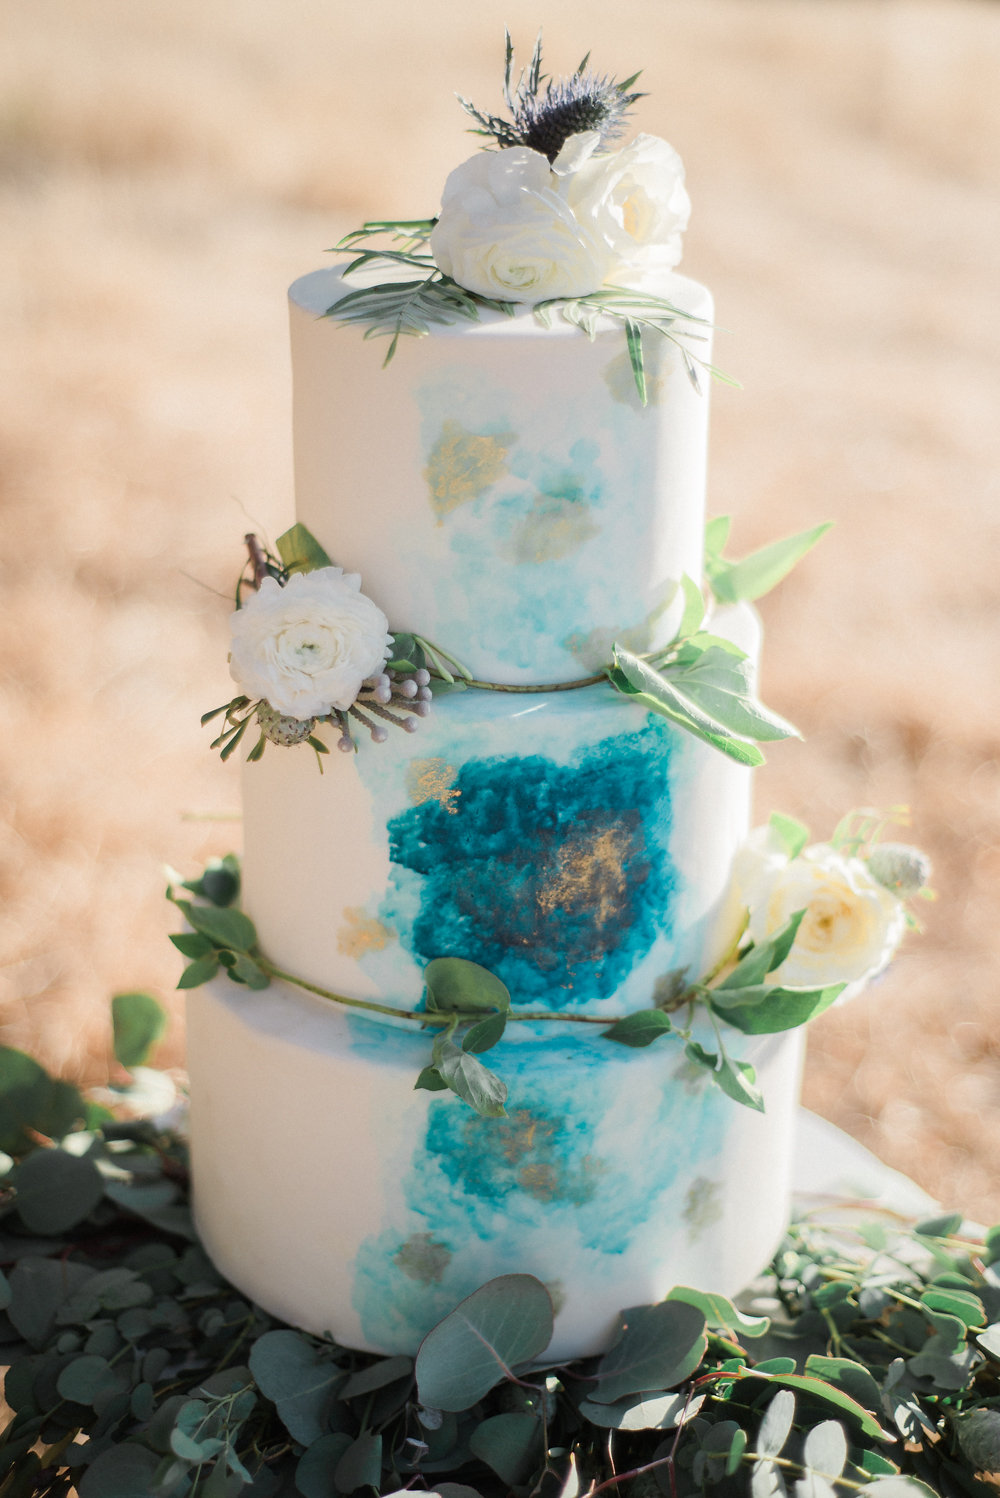 blue painted wedding cake - photo by Anya Kernes Photography http://ruffledblog.com/organic-wedding-inspiration-with-shades-of-blue